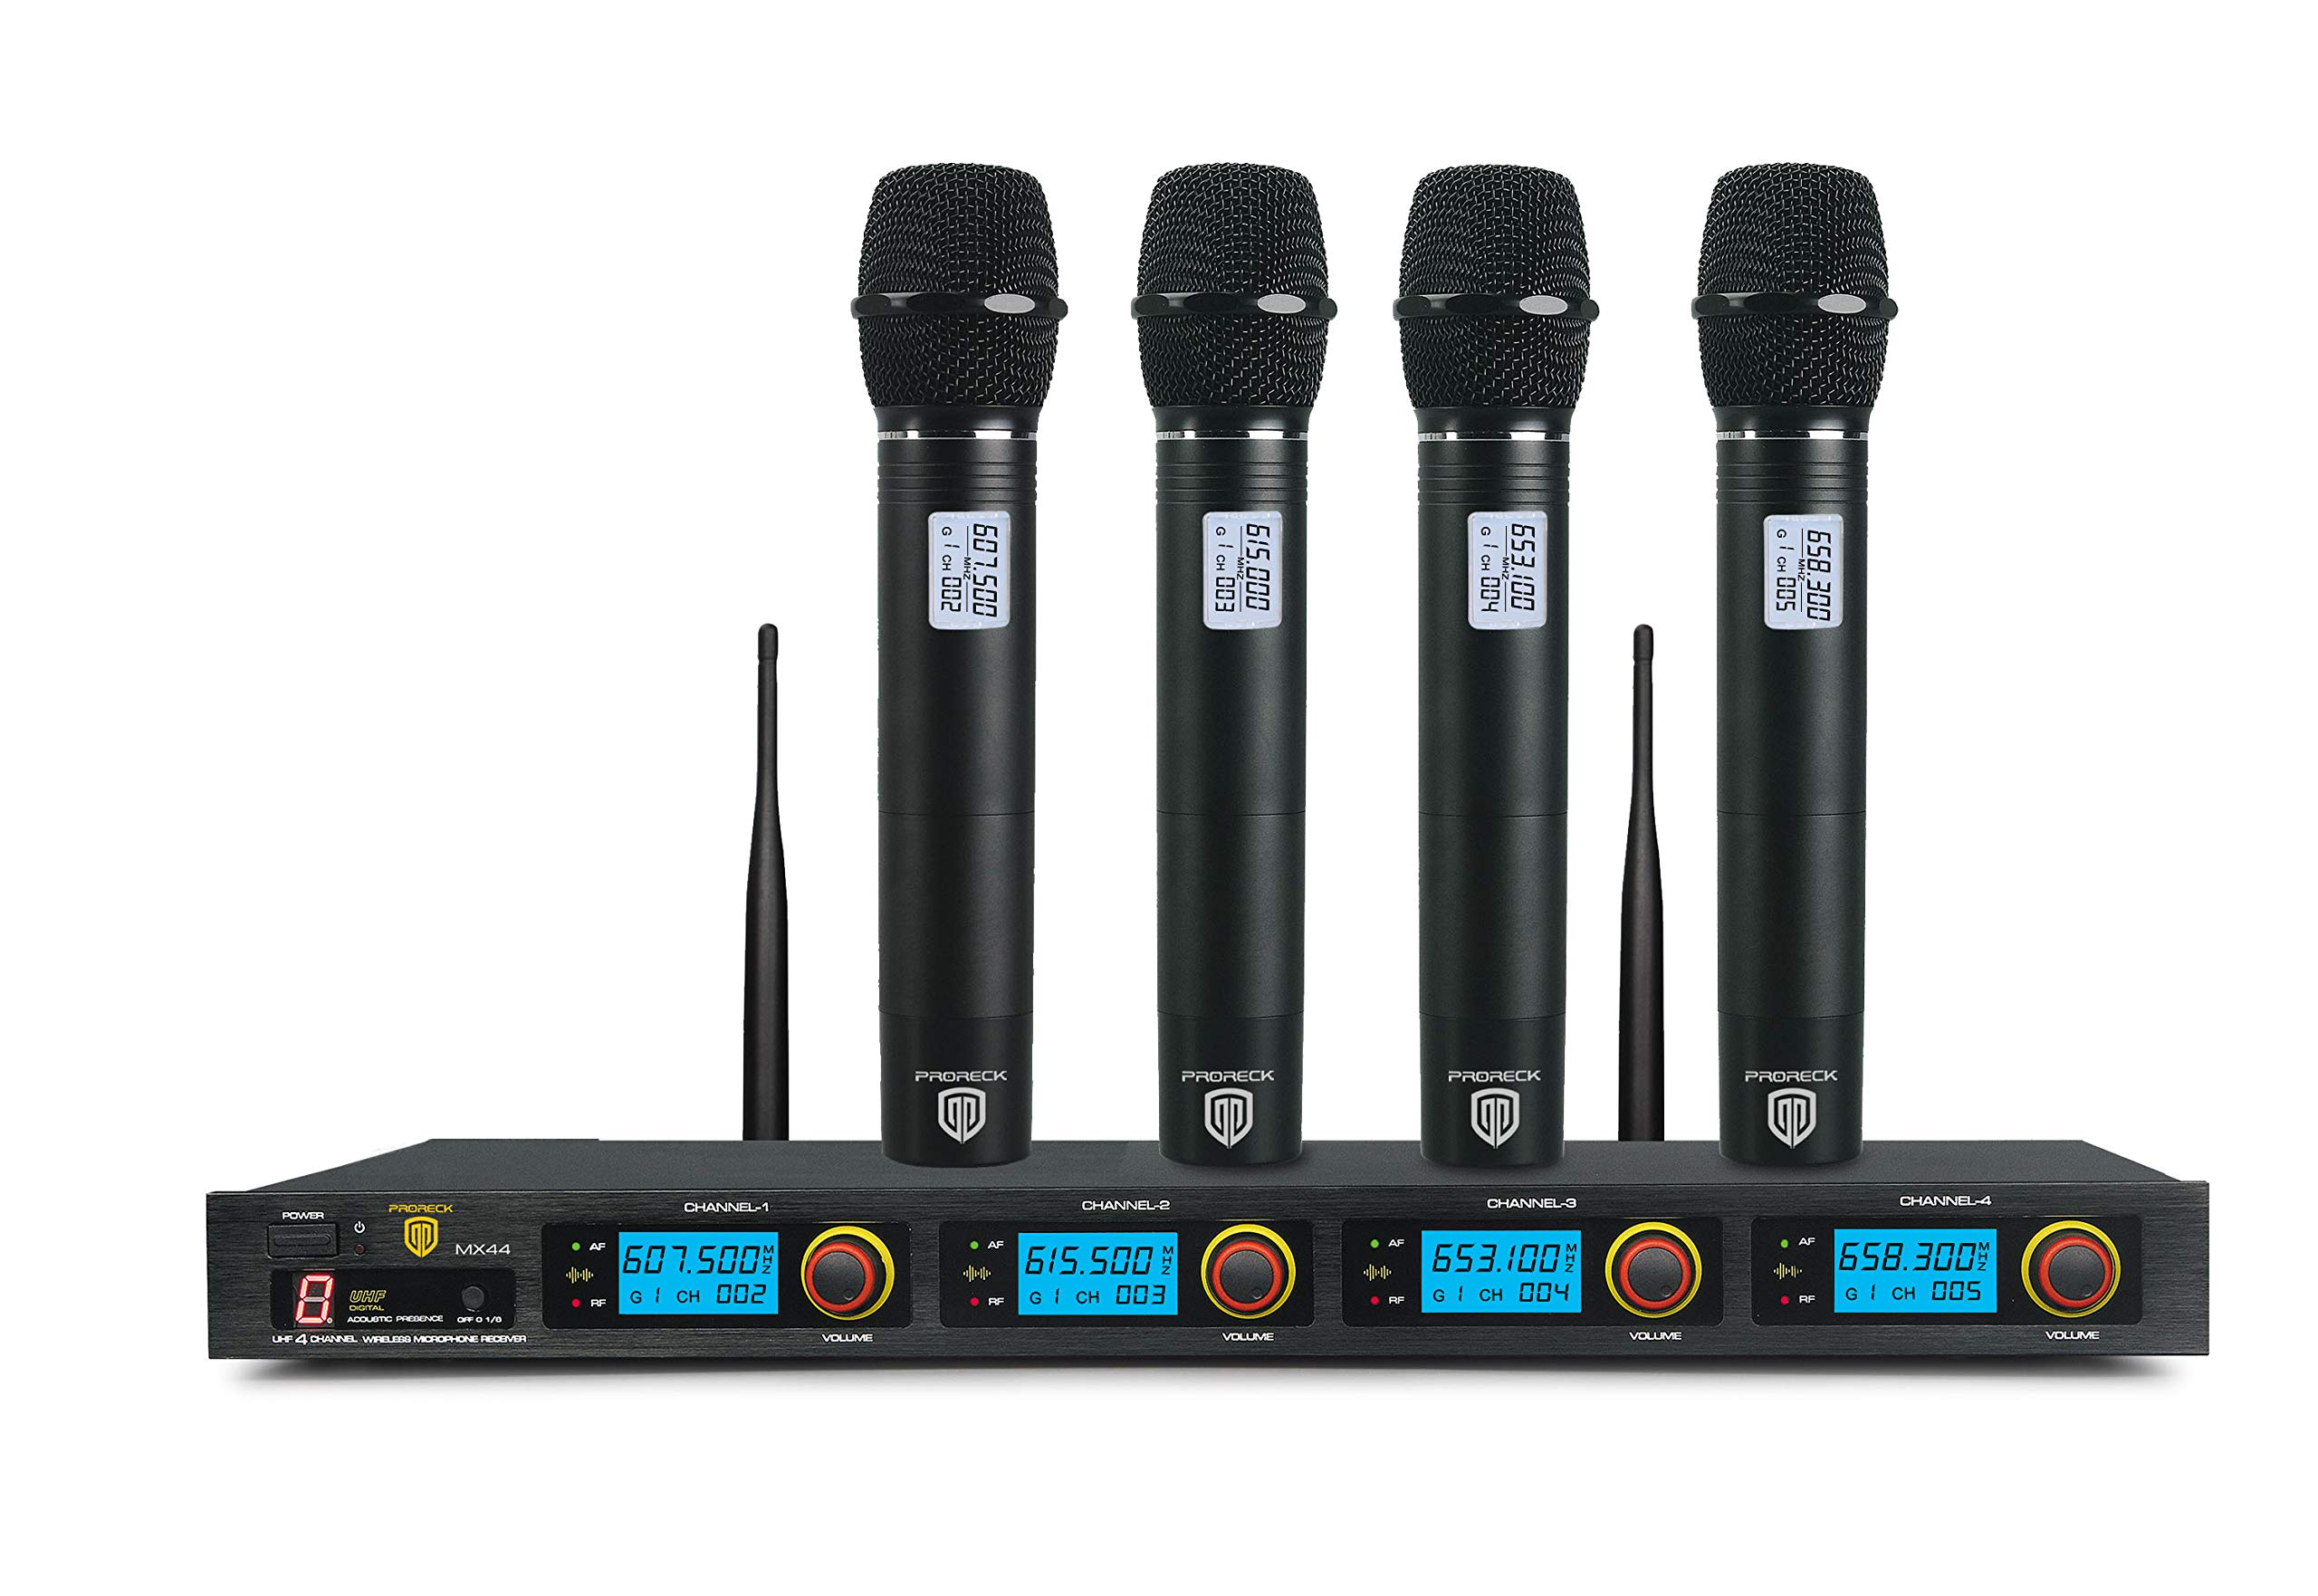 PRORECK MX44 4-Channel UHF Wireless Microphone System with 4 Hand-held Microphones Karaoke Machine for Party/Wedding/Church/Conference/Speech by PRORECK